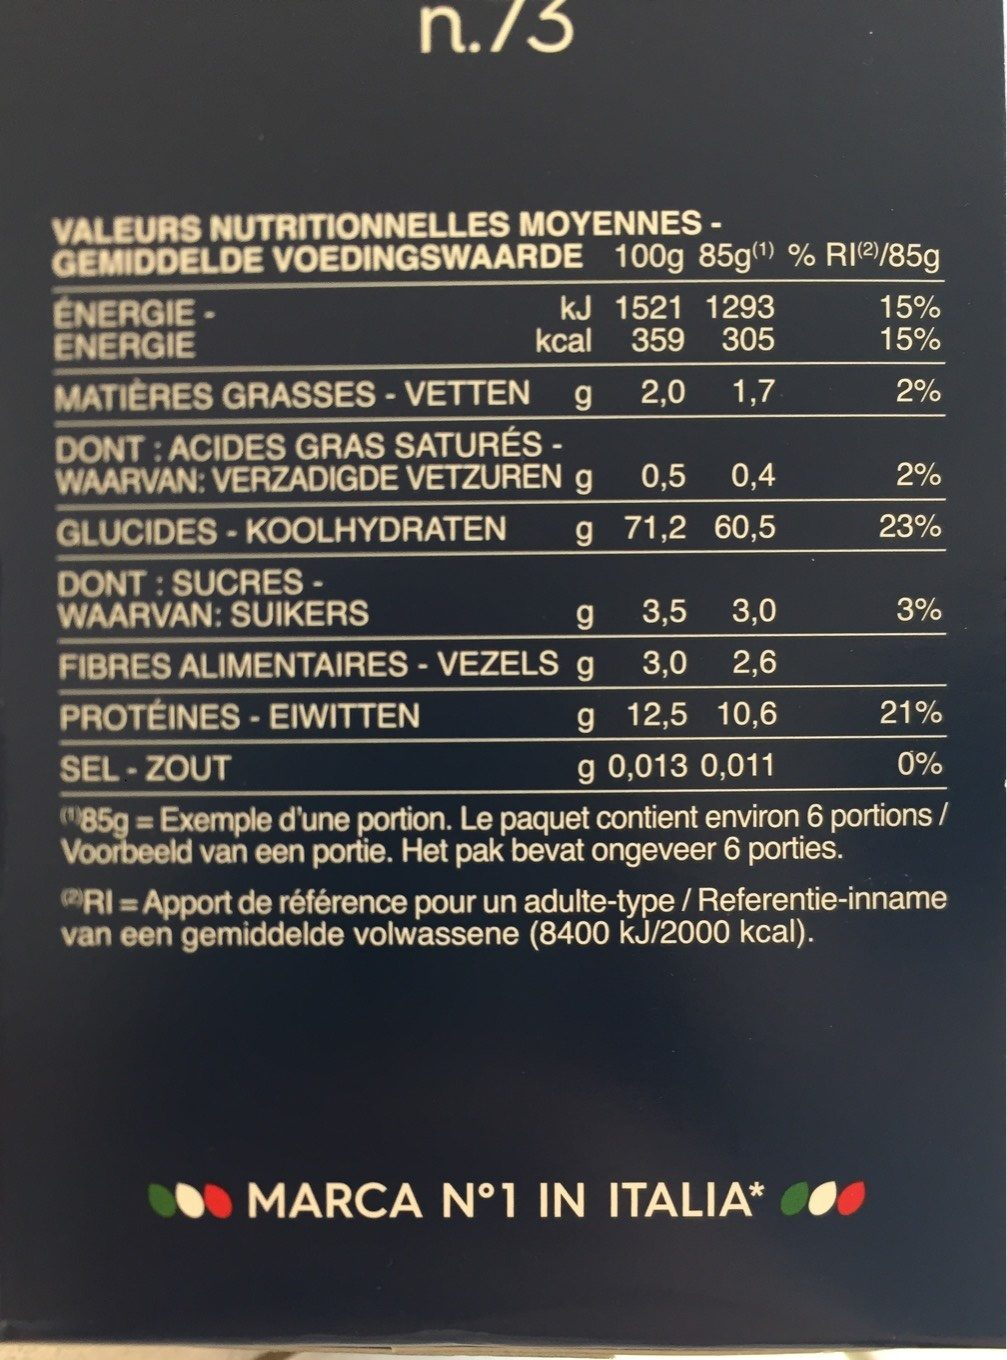 Pâtes - Penne Rigate n.73 - Nutrition facts